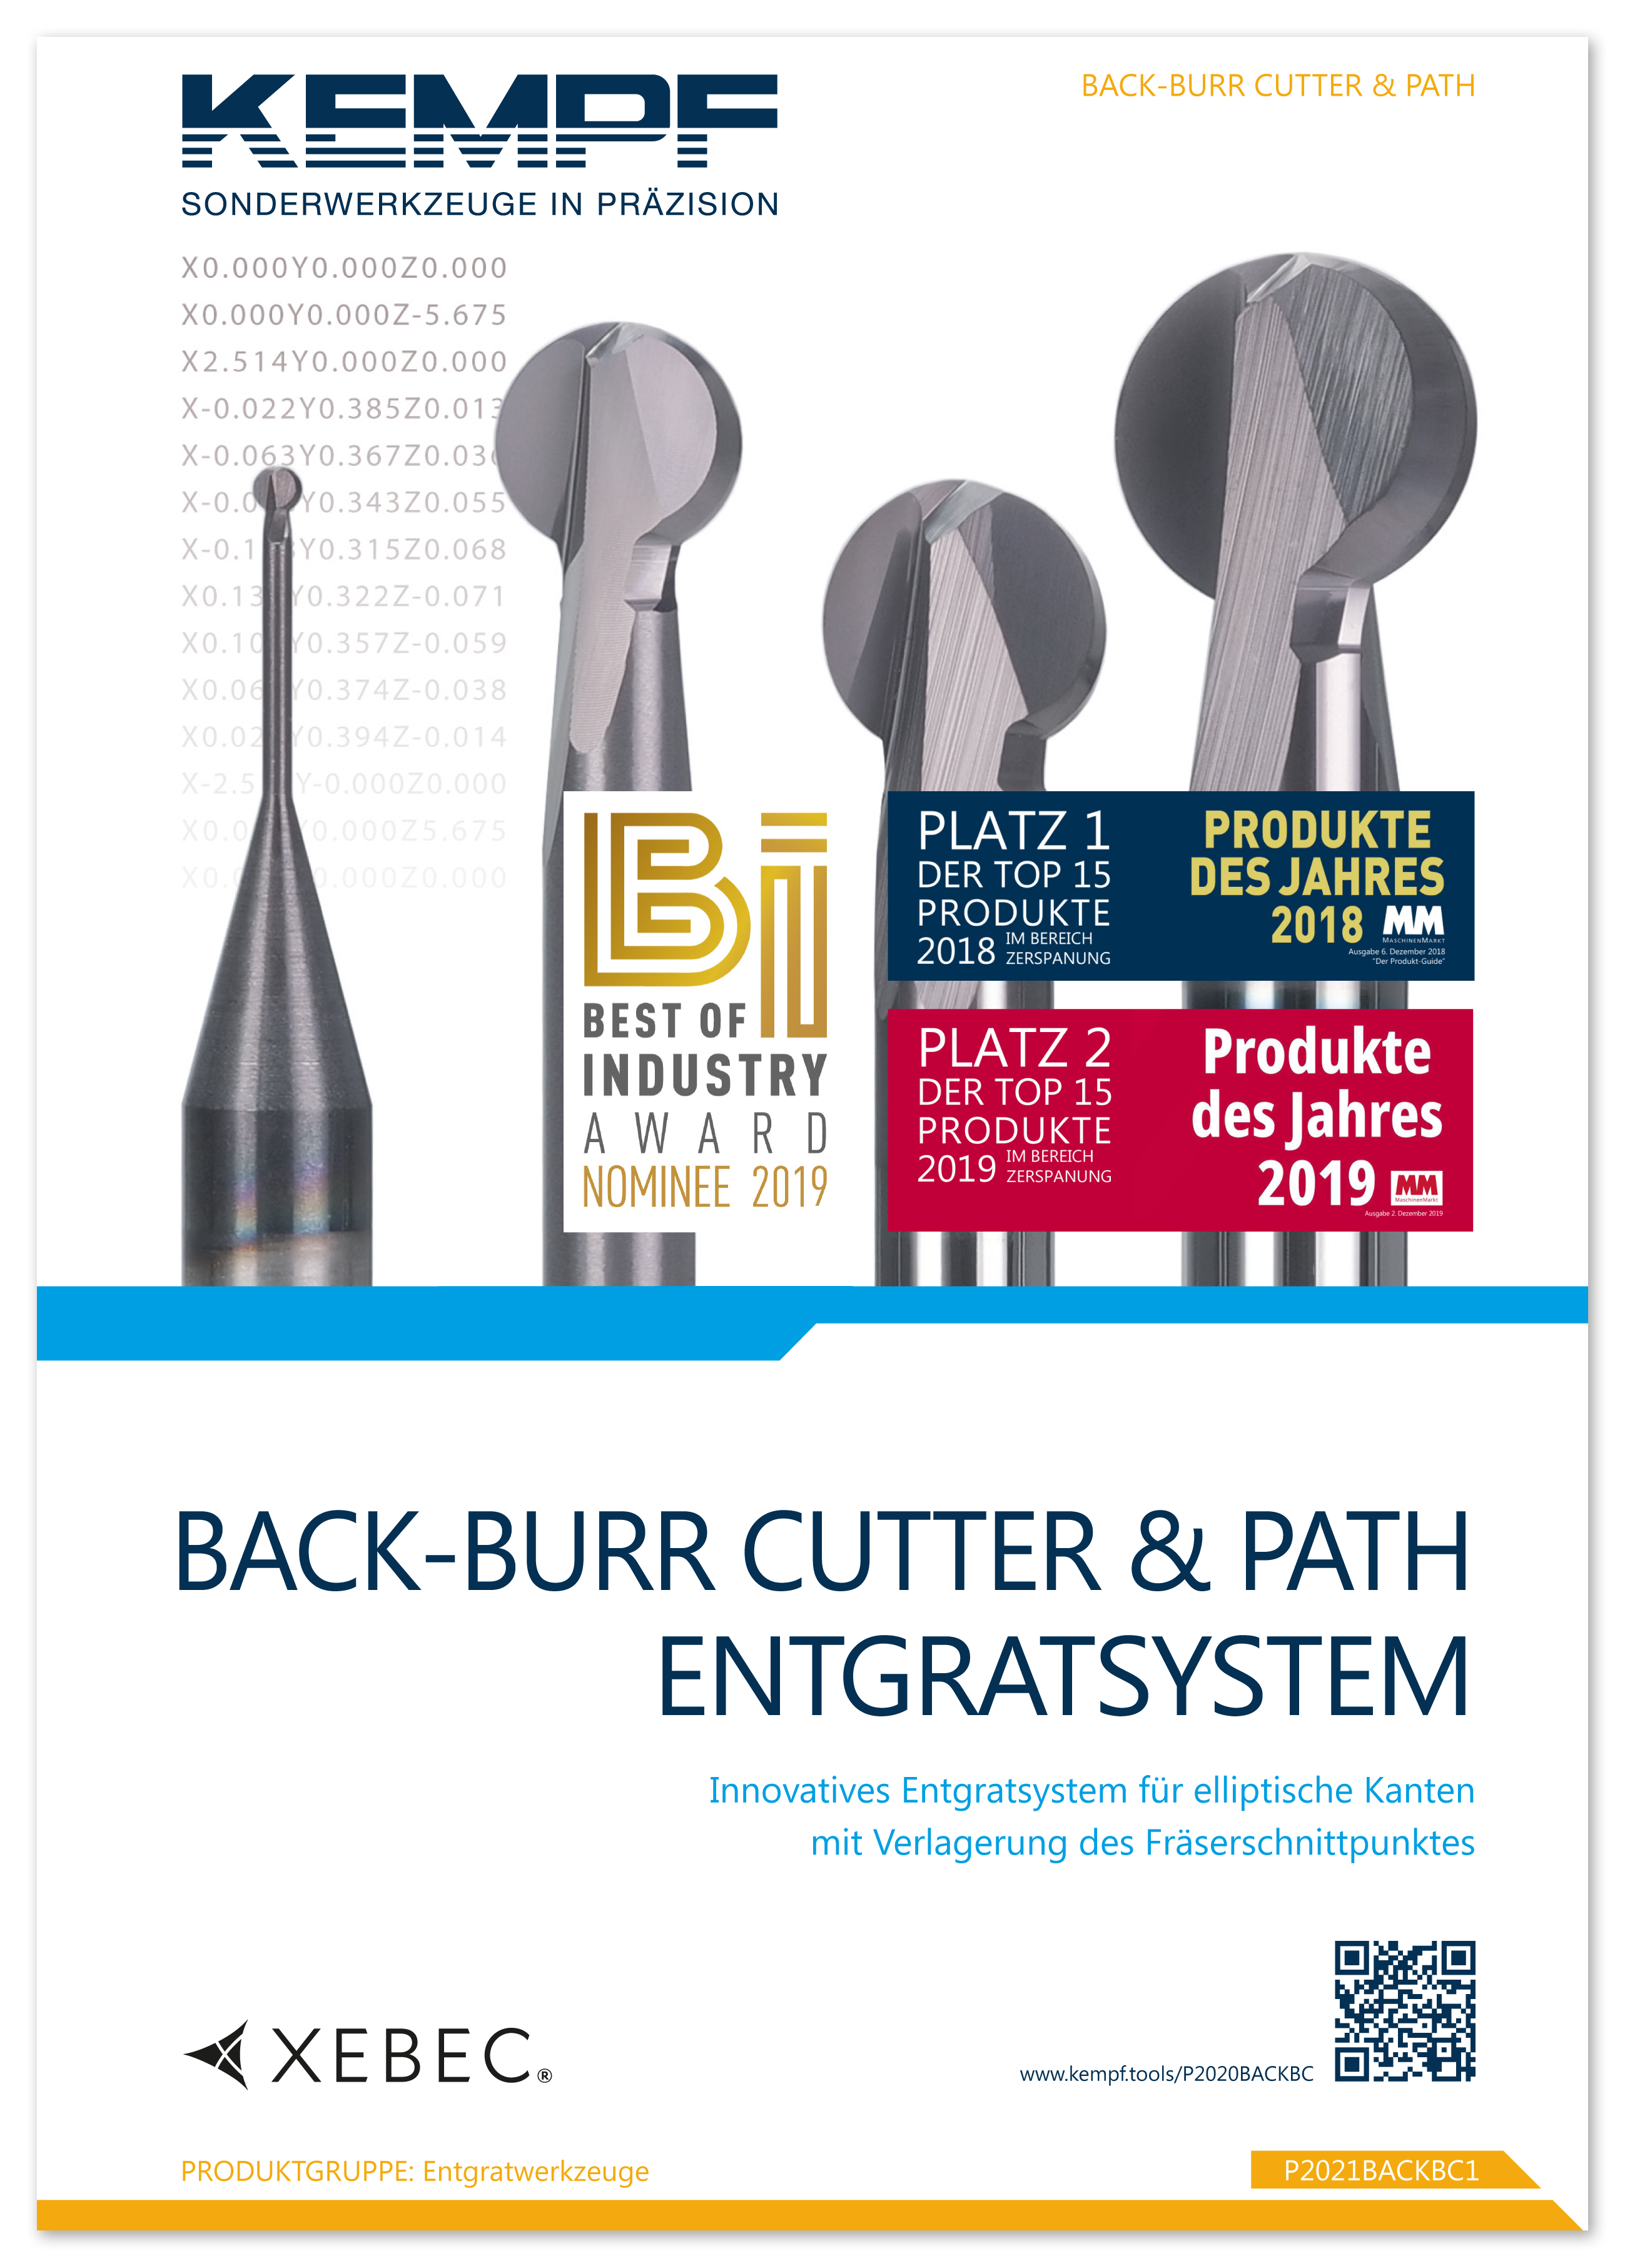 ENTGRATEN-BackBurrCutter-Path-EntgratsystemP2021BACKBC1